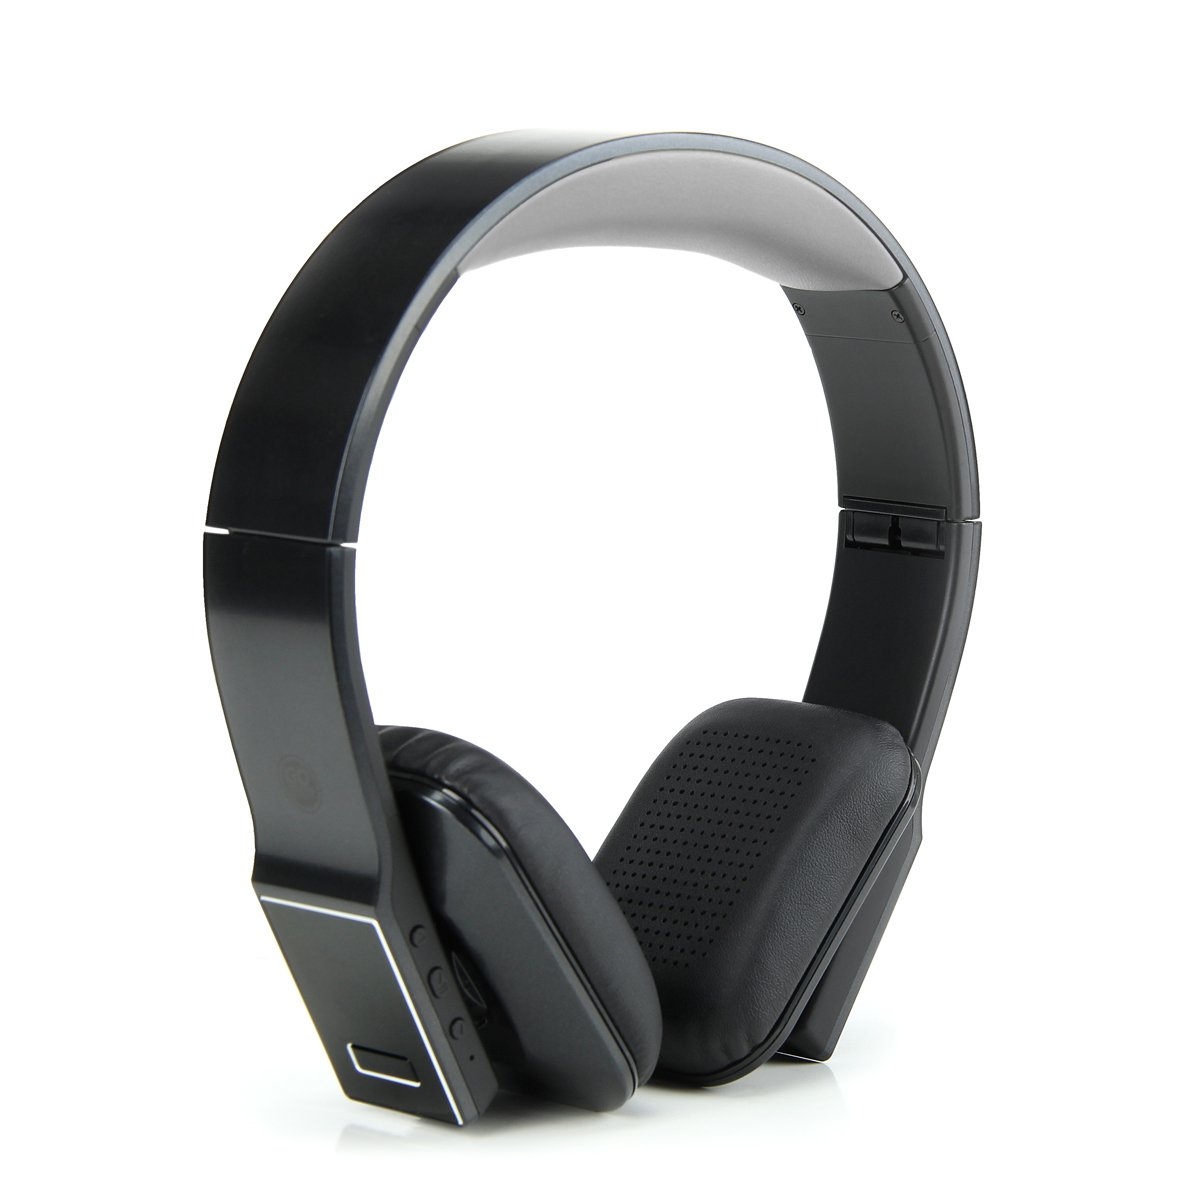 GOgroove Wireless Over-the-Ear Bluetooth Headphones with Mic & 14-Hour Battery Life - Works With Apple iPhone 6 Plus, Samsung Galaxy S6 Edge, LG G4 and Many Other Bluetooth-Enabled Smartphones